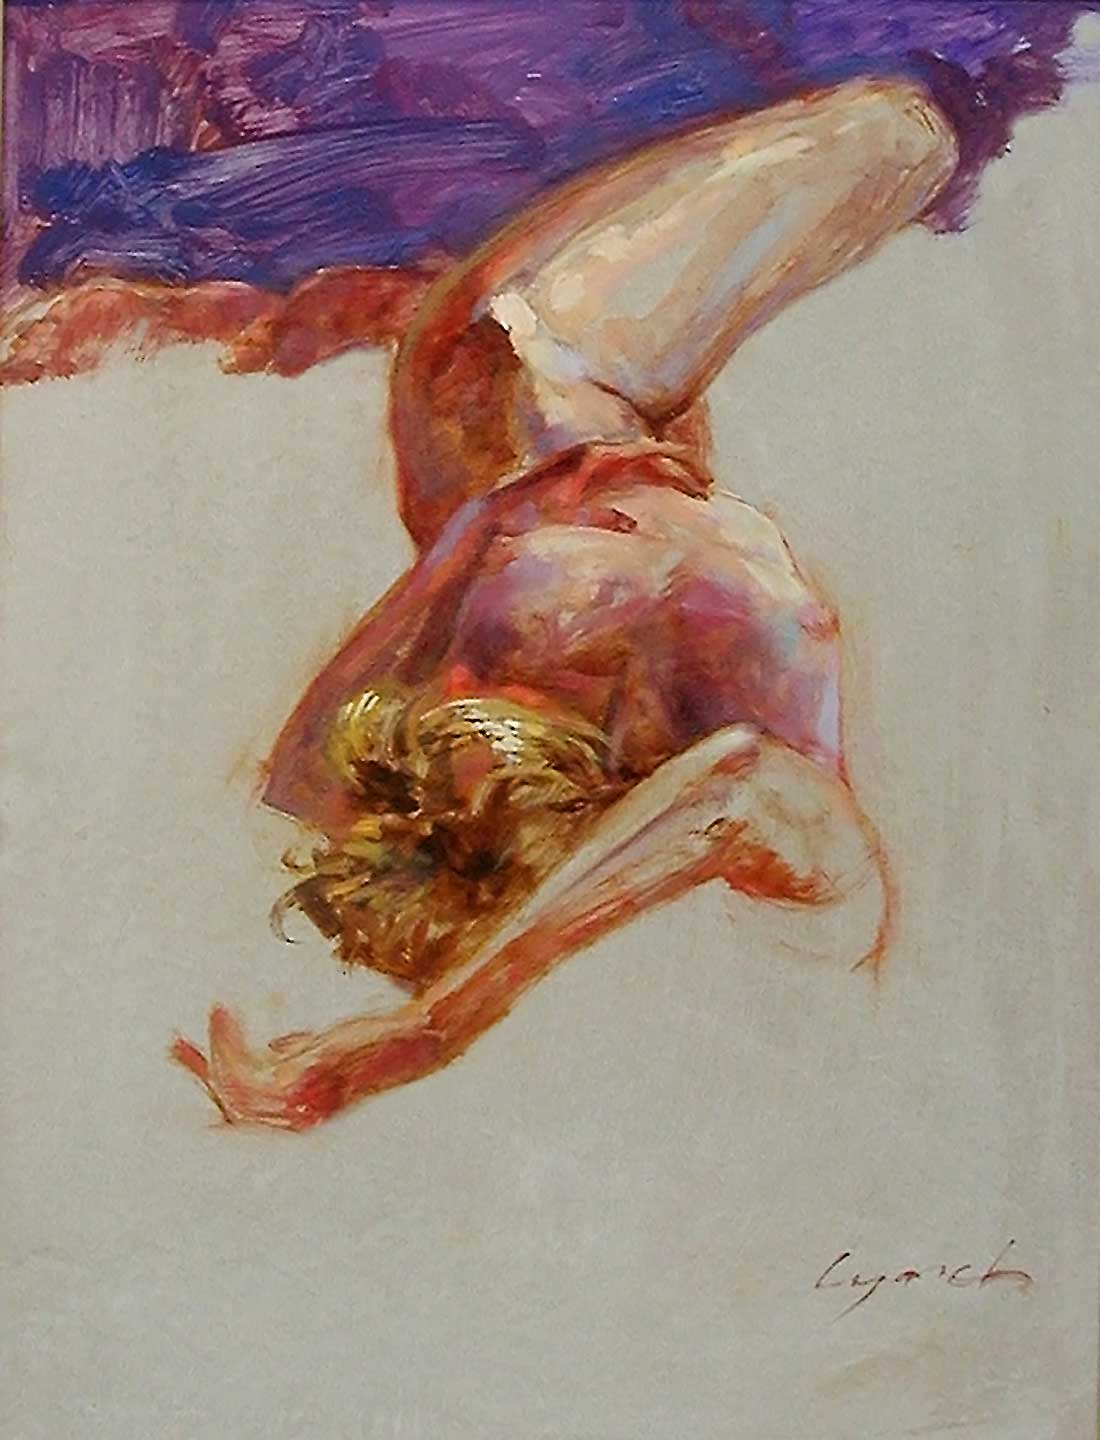 'Nude Reclined 24' oil on prepared board 16 X 20 in. copyright Brent Lynch